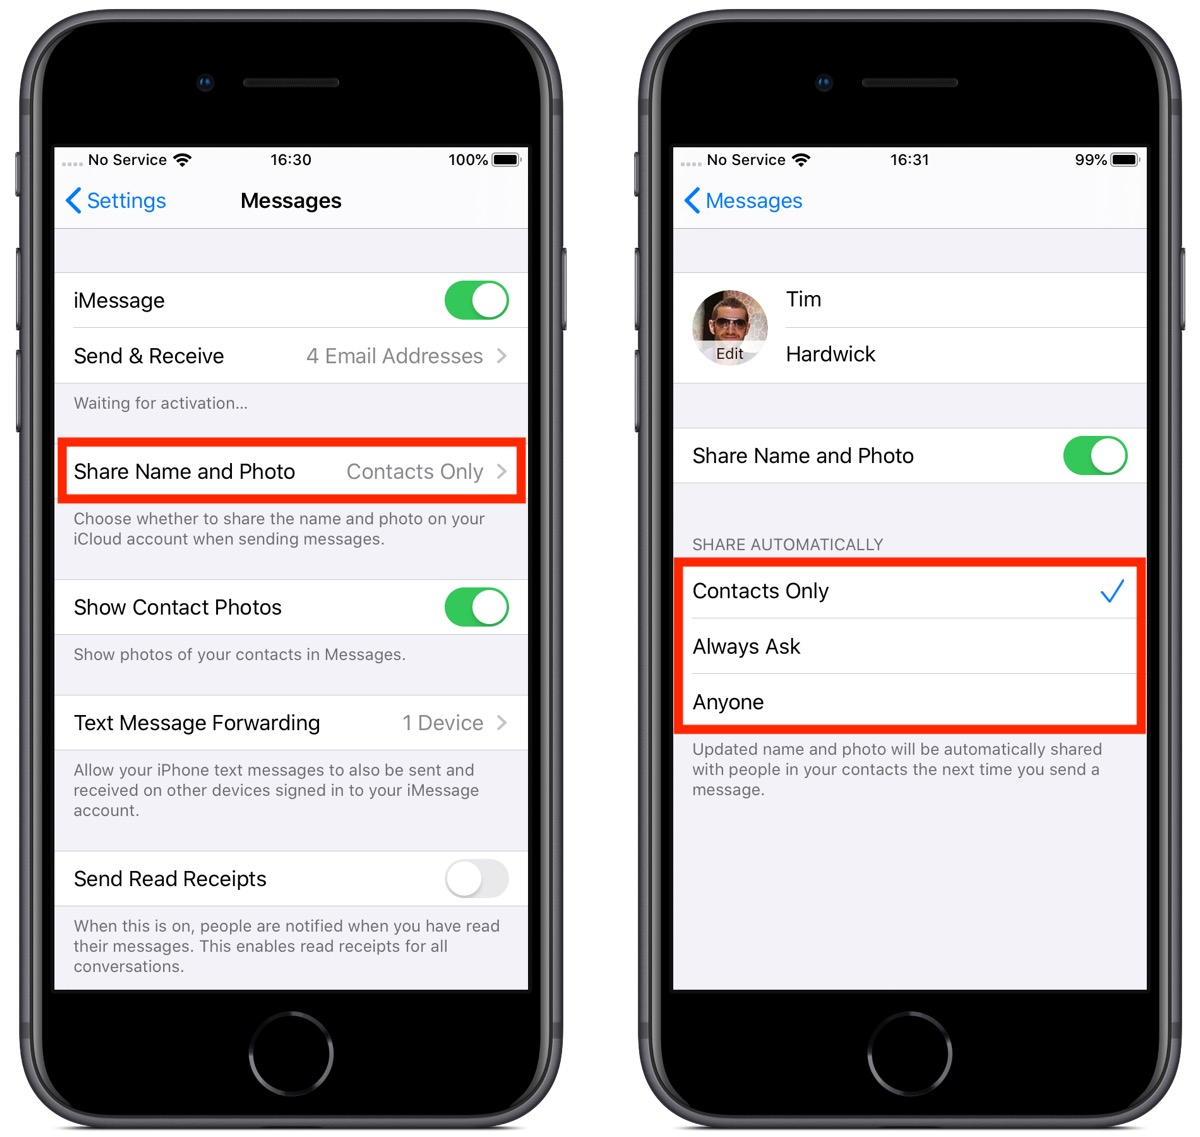 How to Change Who Sees Your Messages Profile in iOS 13 - MacRumors